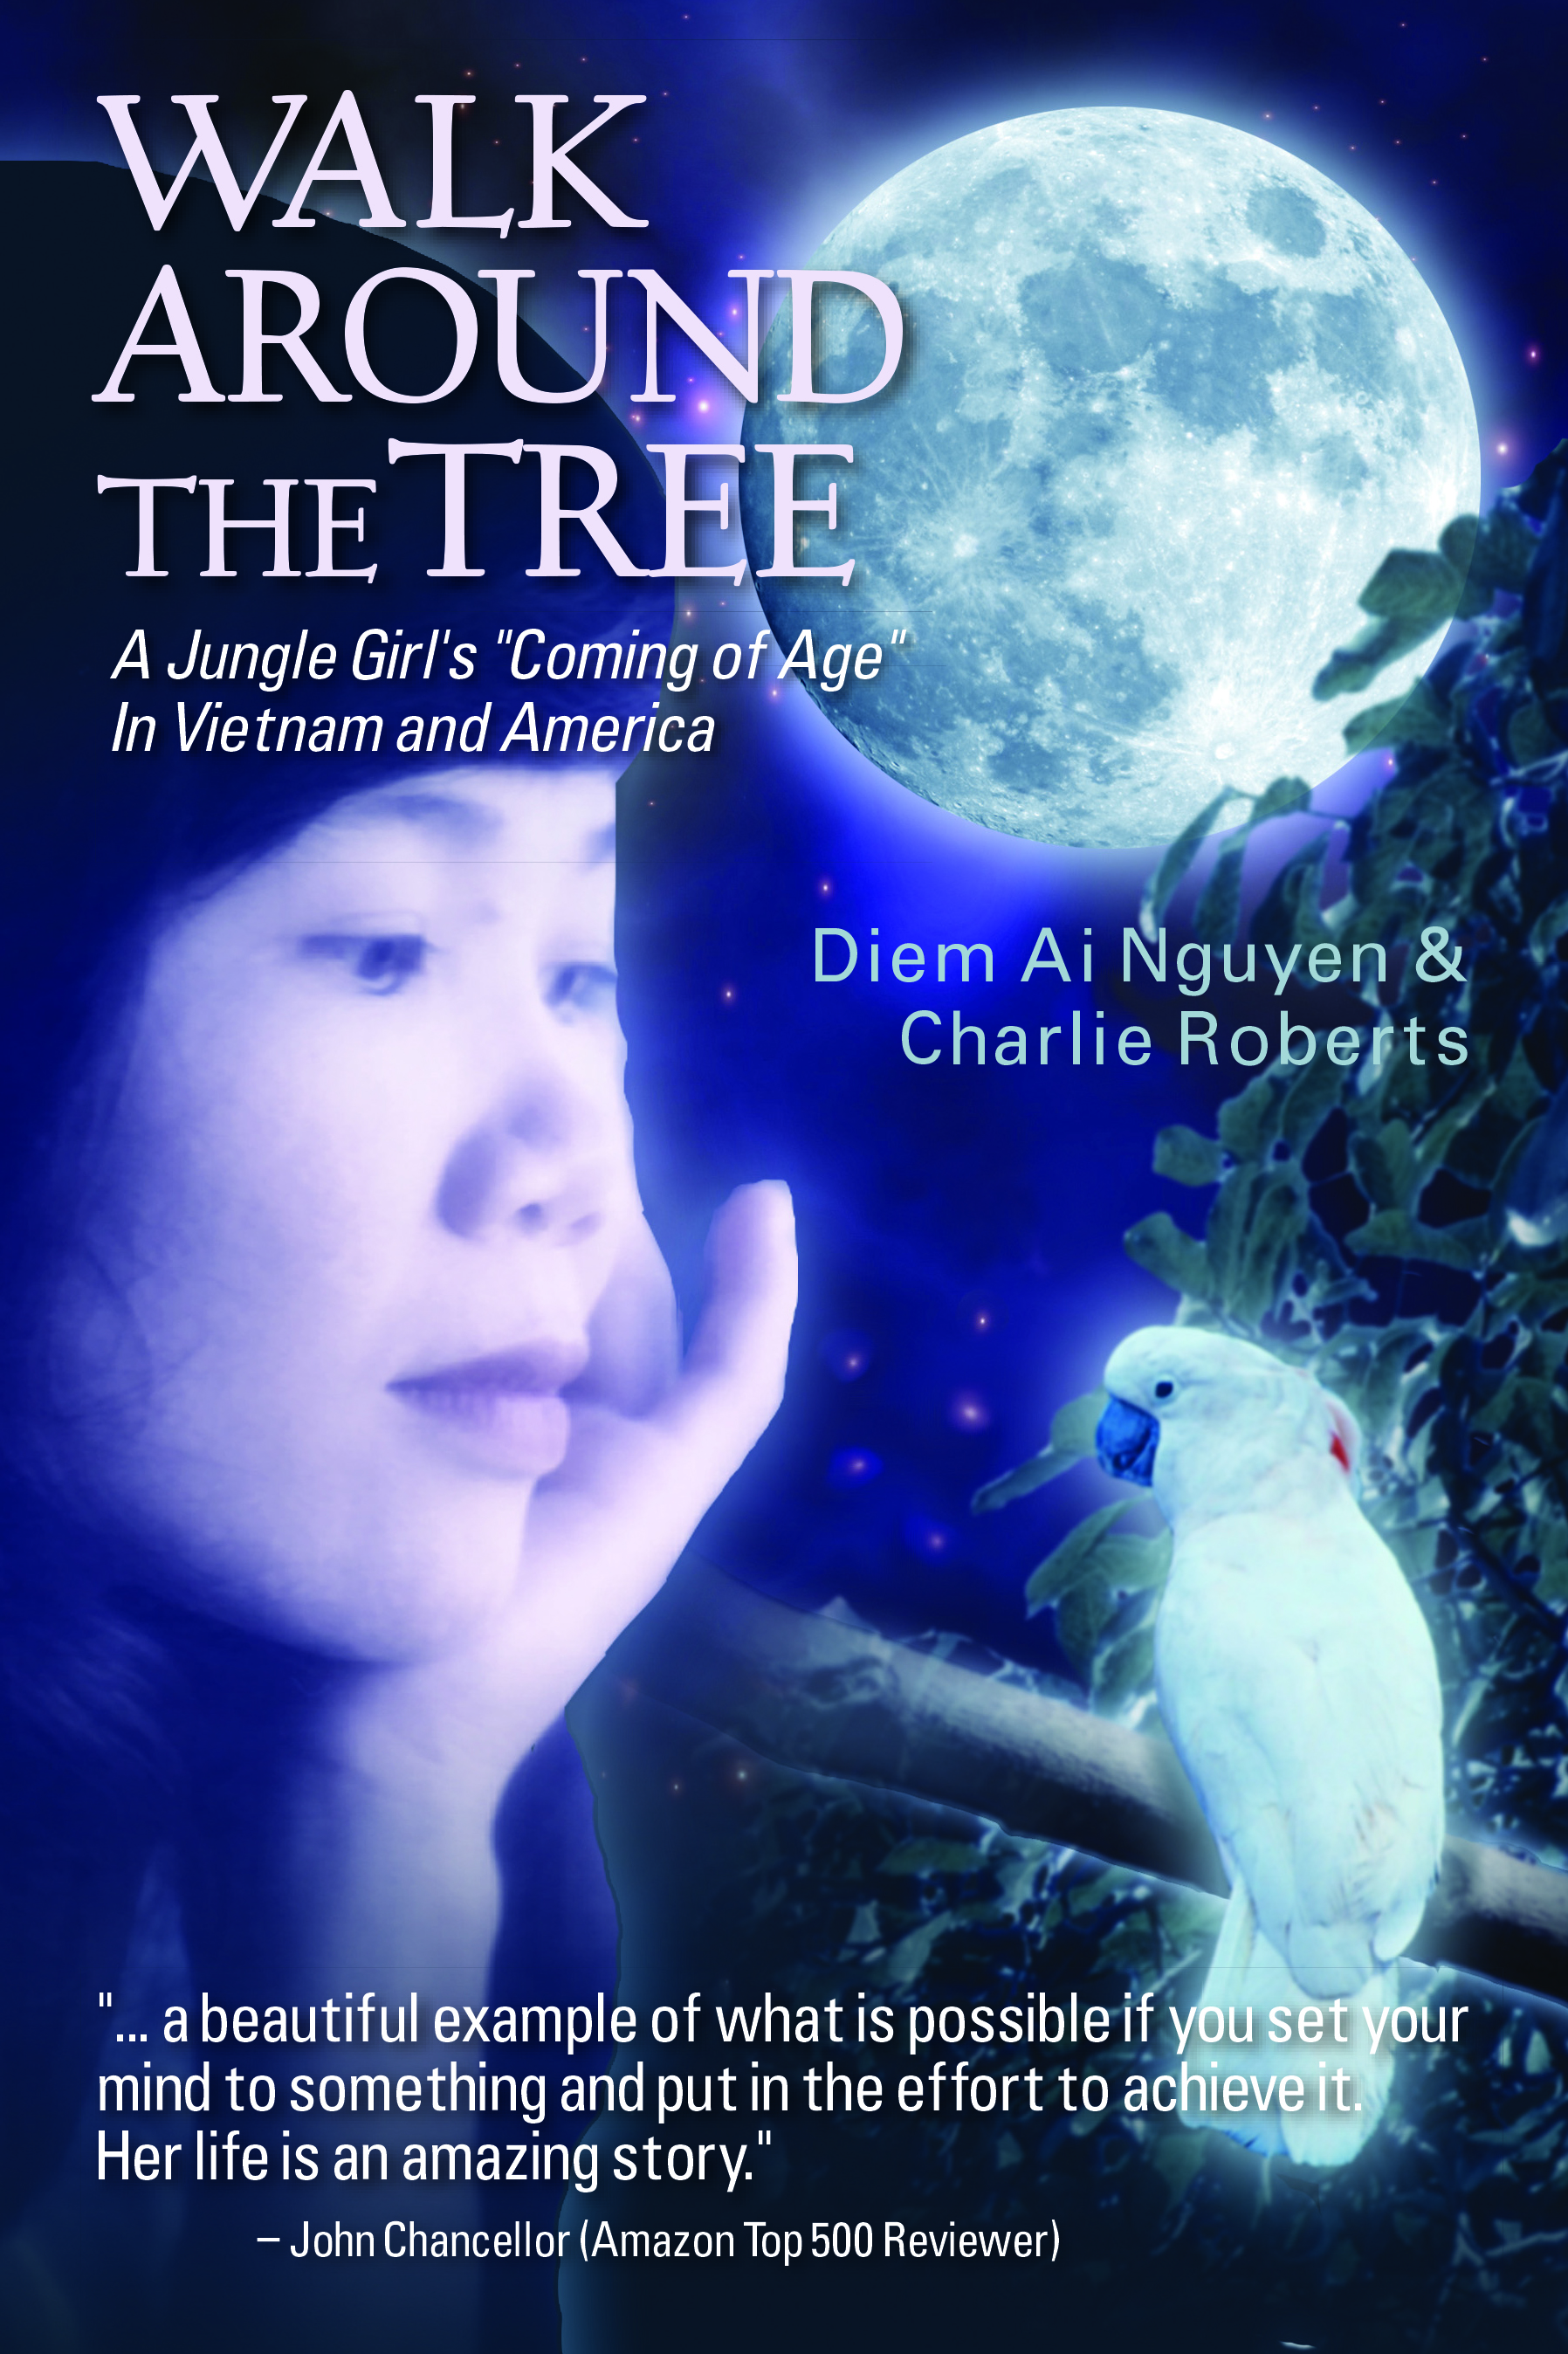 coming of age in a tree Walk around the tree: a jungle girl's coming of age in vietnam and amaerica - kindle edition by diem ai nguyen, charlie roberts download it once and read it on your kindle device, pc, phones or tablets.